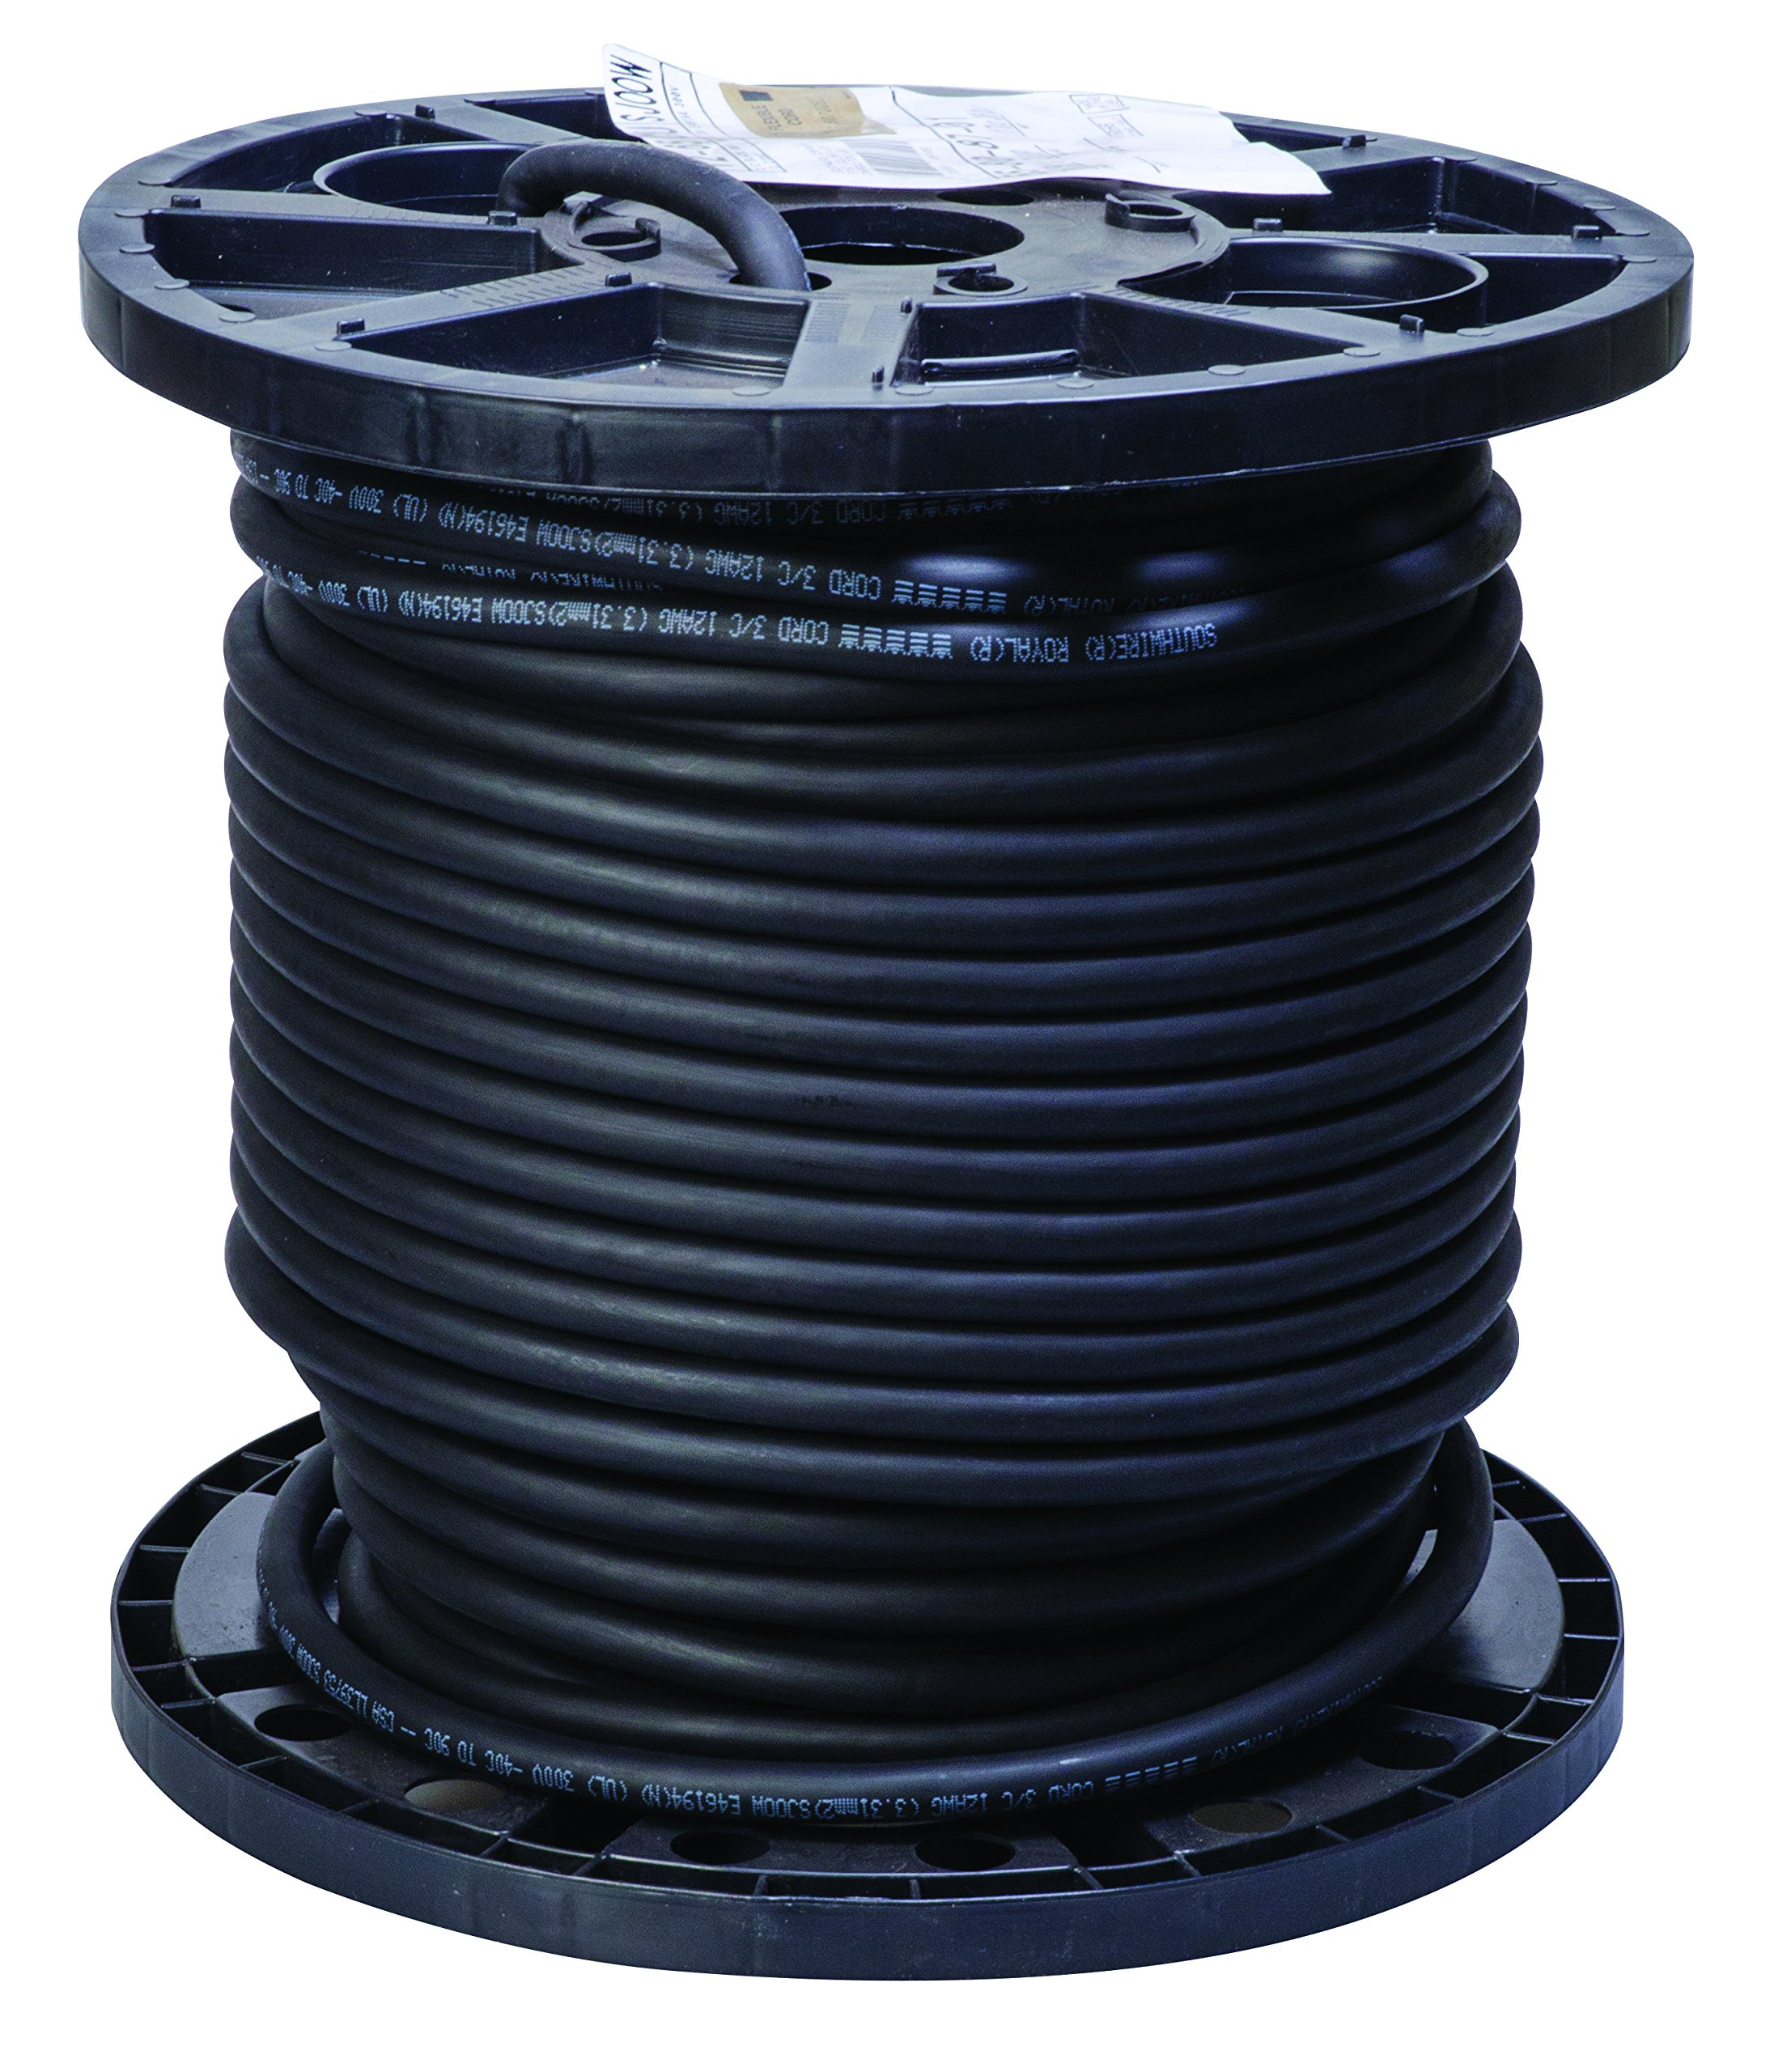 Southwire 55808701 12/3 SJOOW Flexible Portable Cord, 250' by Southwire